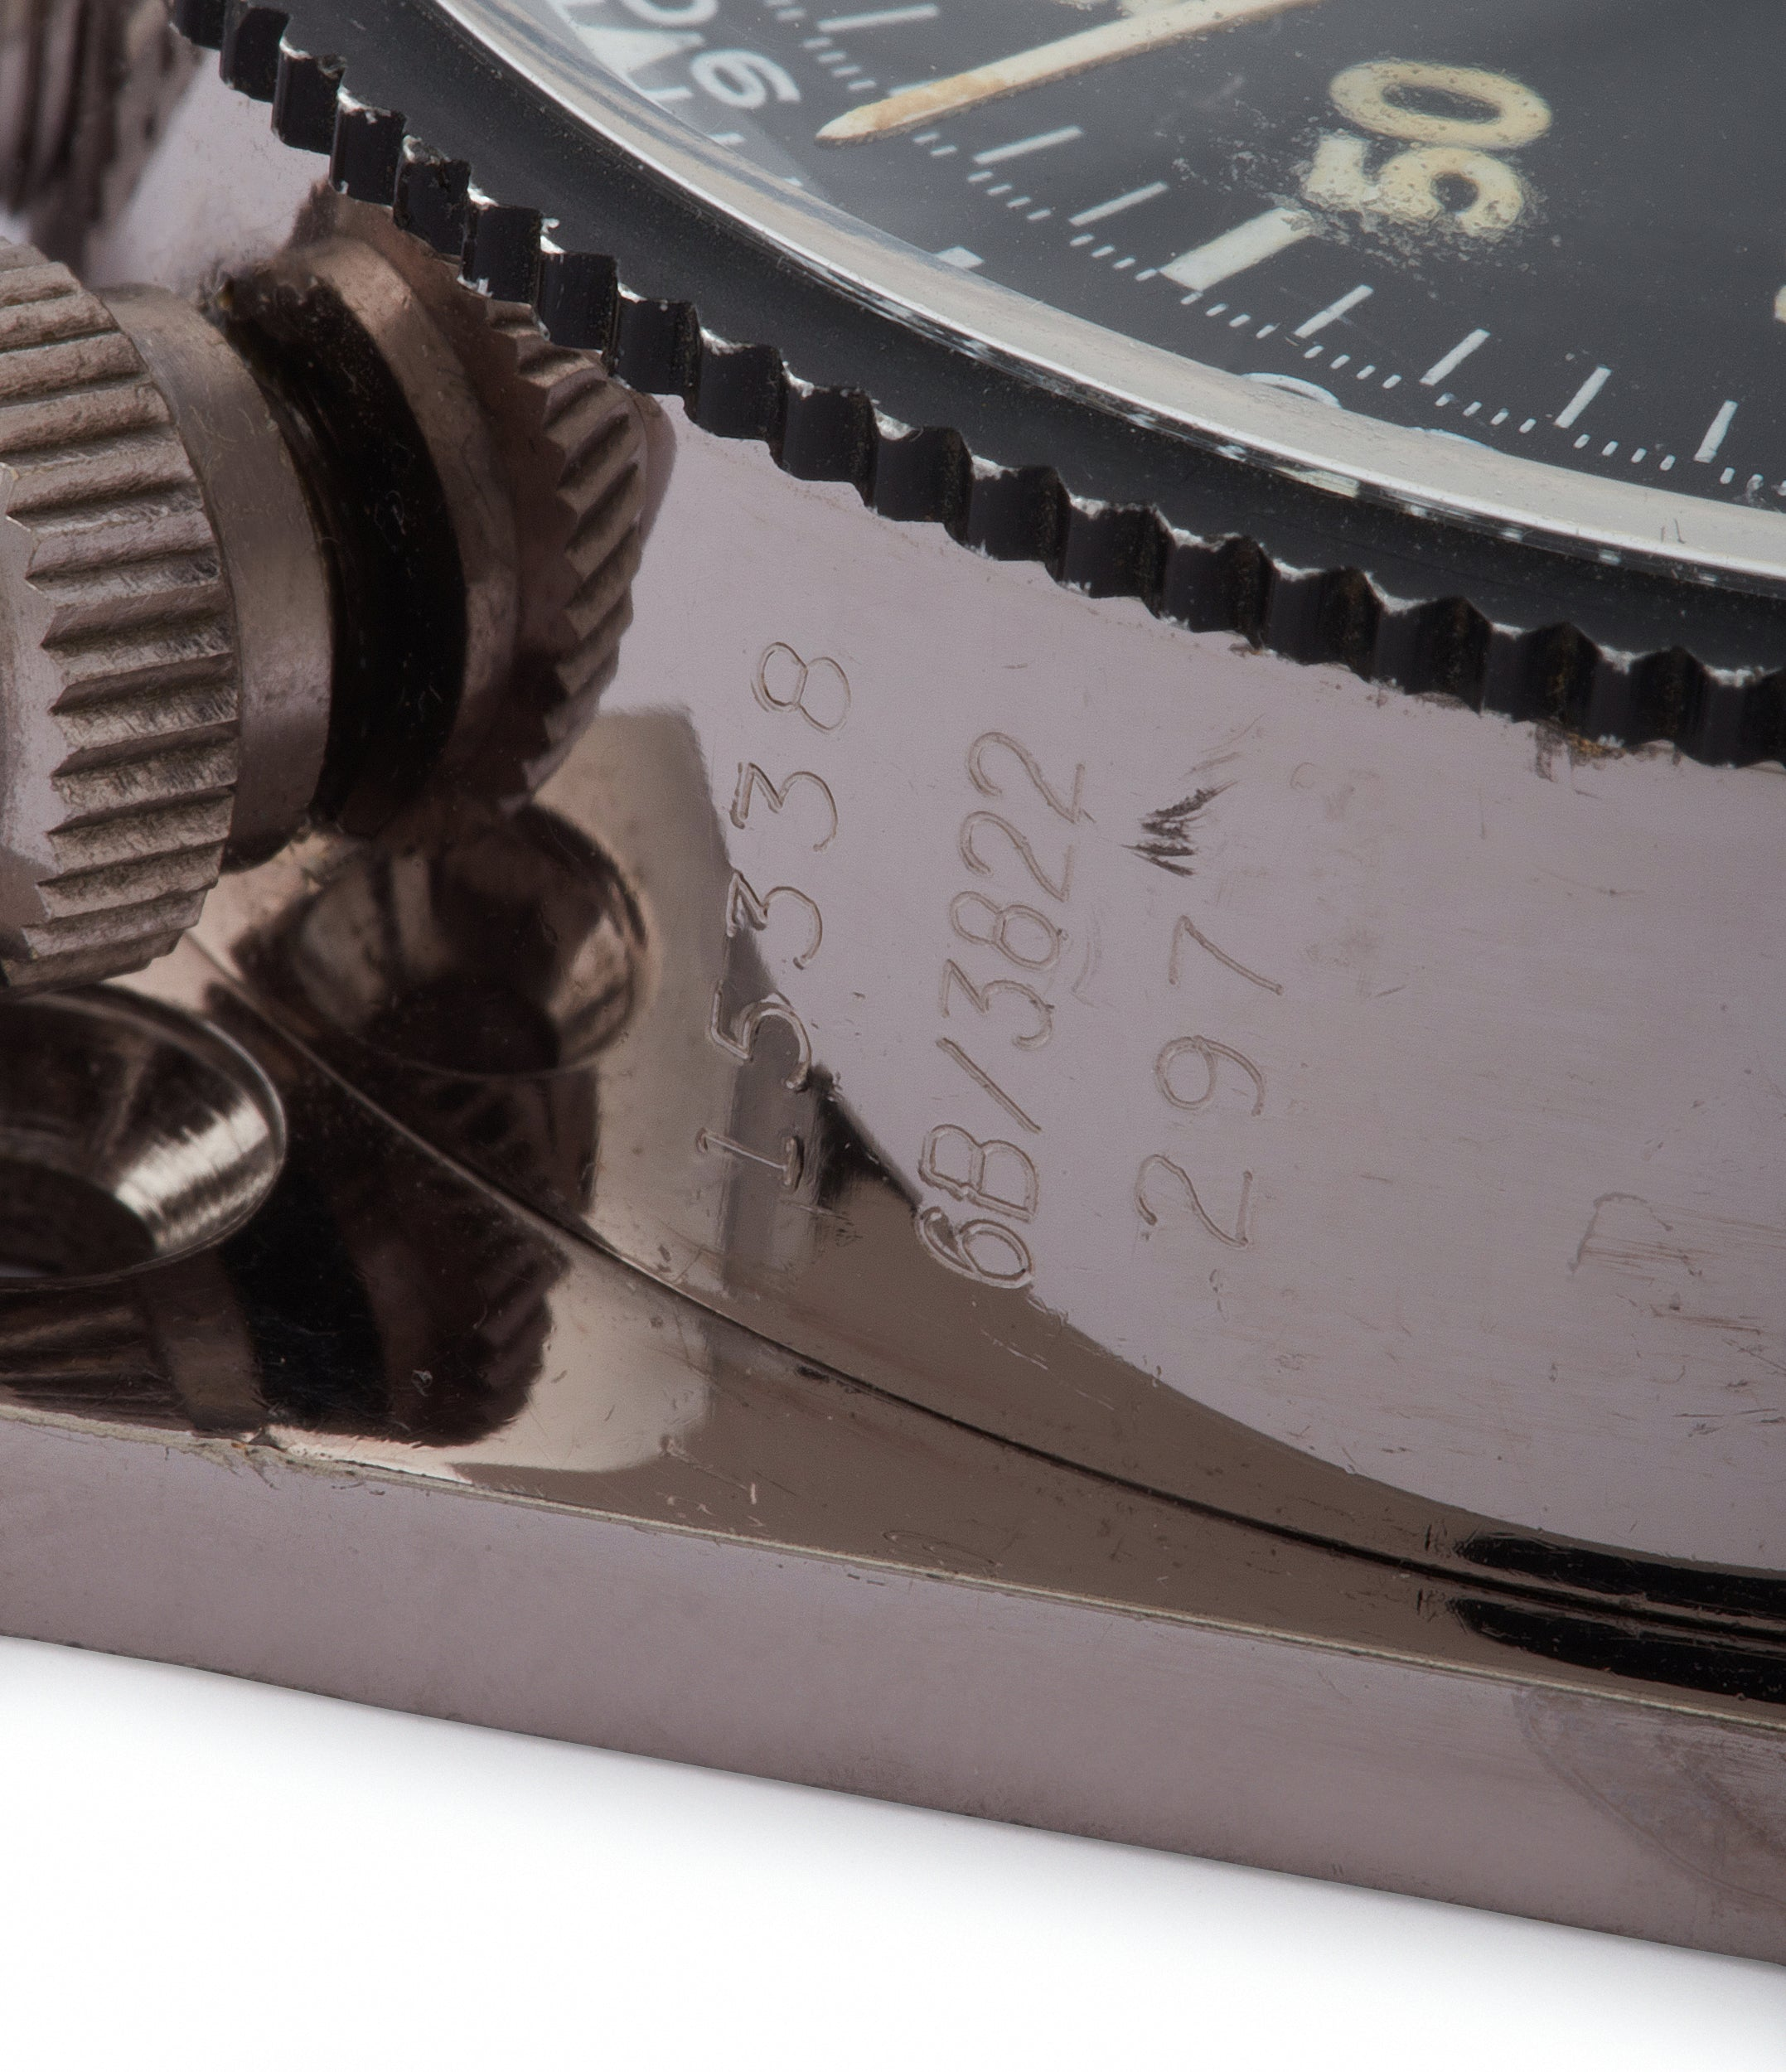 rare 3B/3822 Heuer Monte-Carlo Stopwatch Timer RAF-issued Broad Arrow chronograph for sale at A Collected Man London